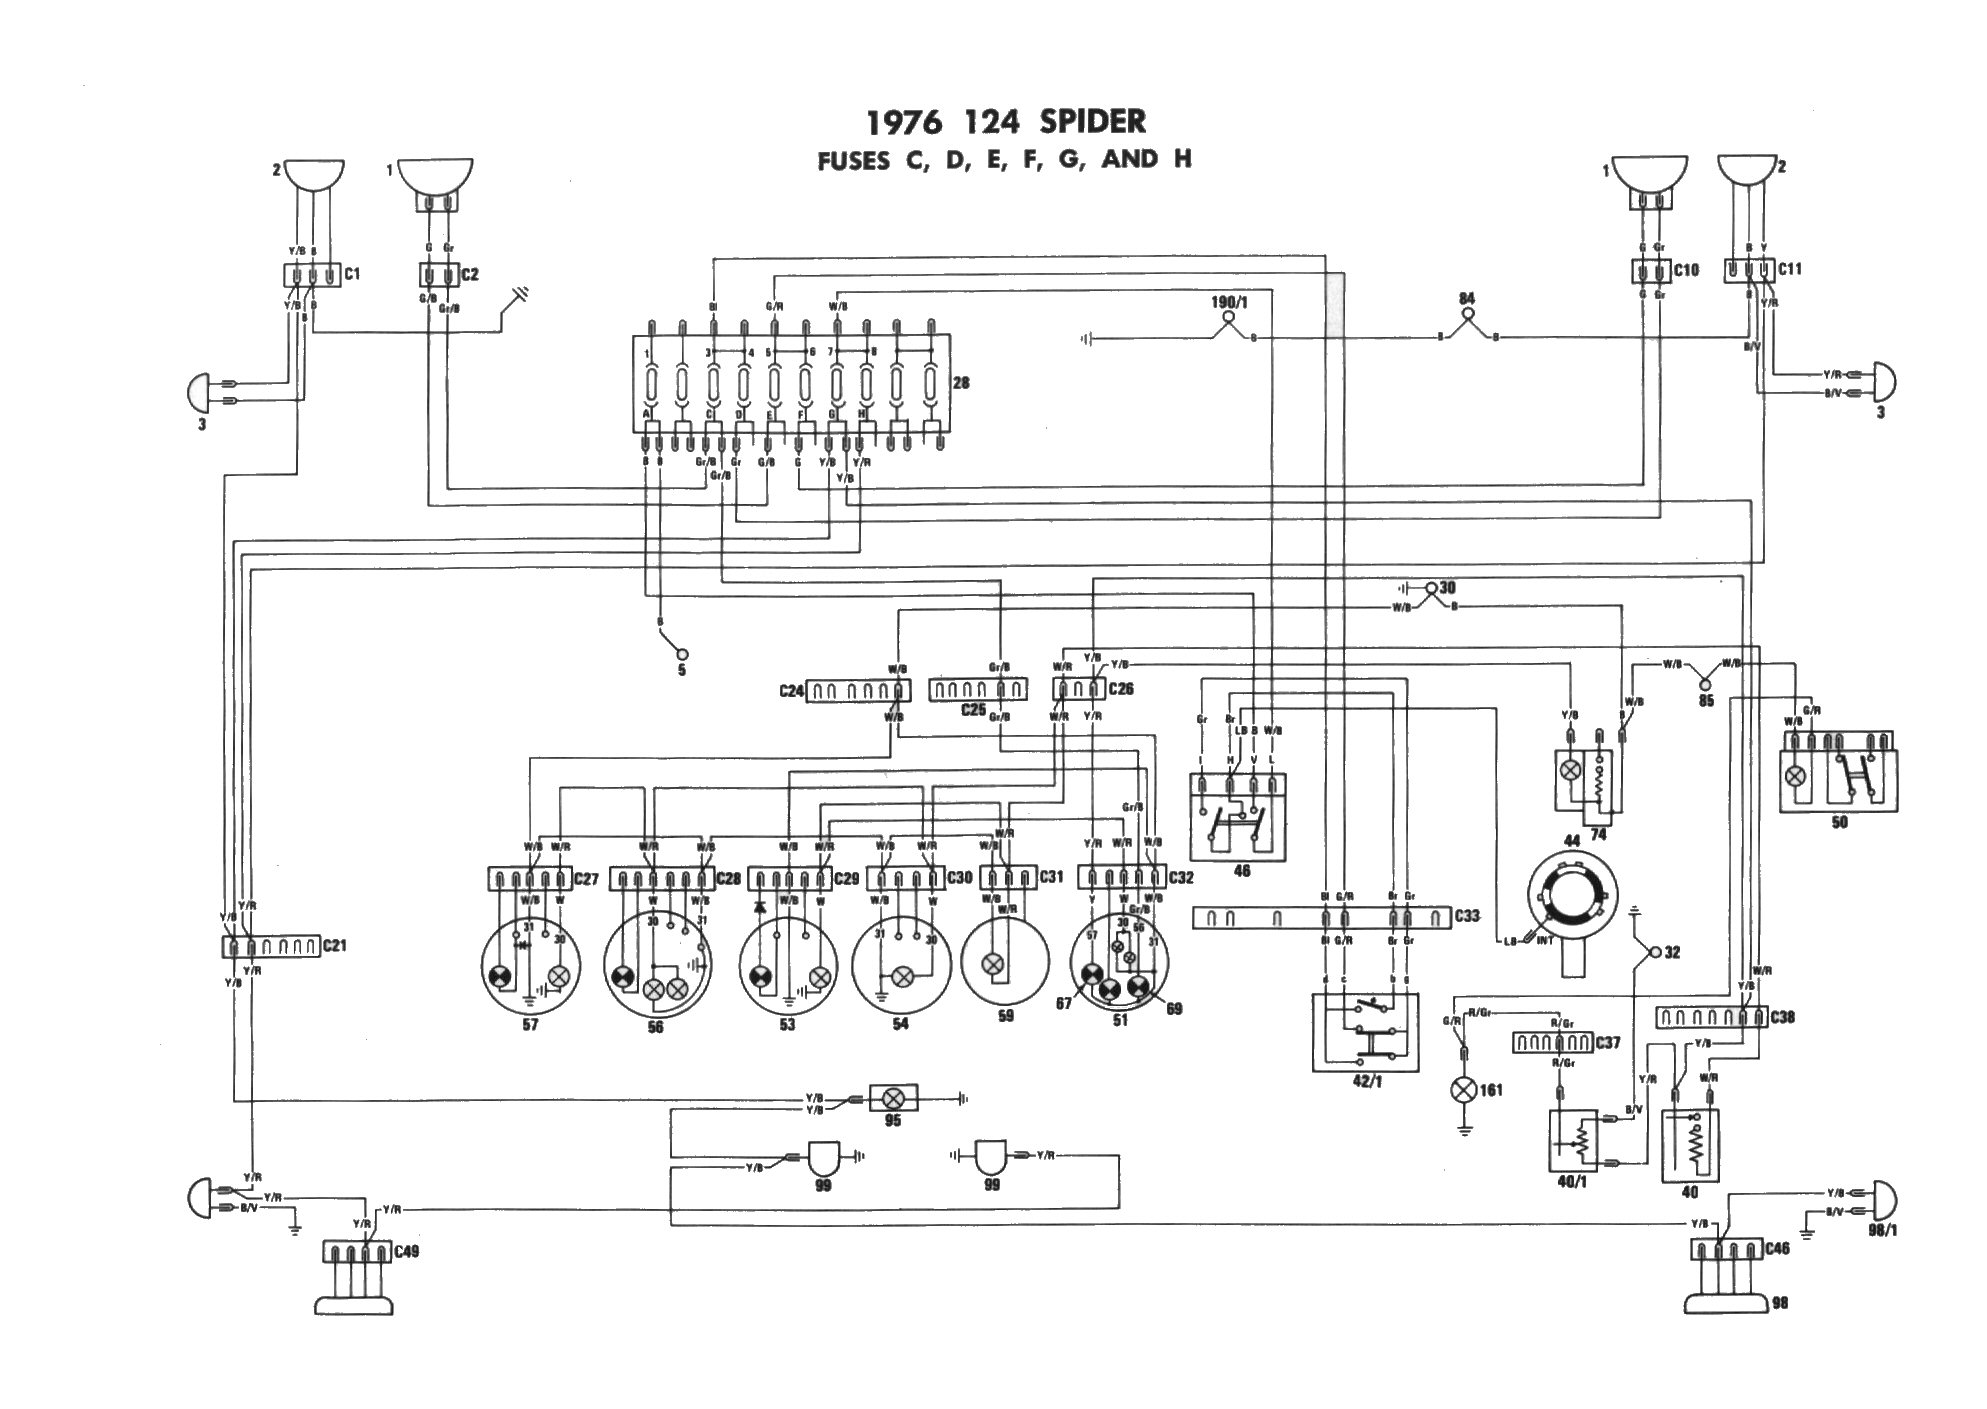 fiat spider cso 2000 electrical wiring diagram 81 wire center u2022 rh linxglobal co